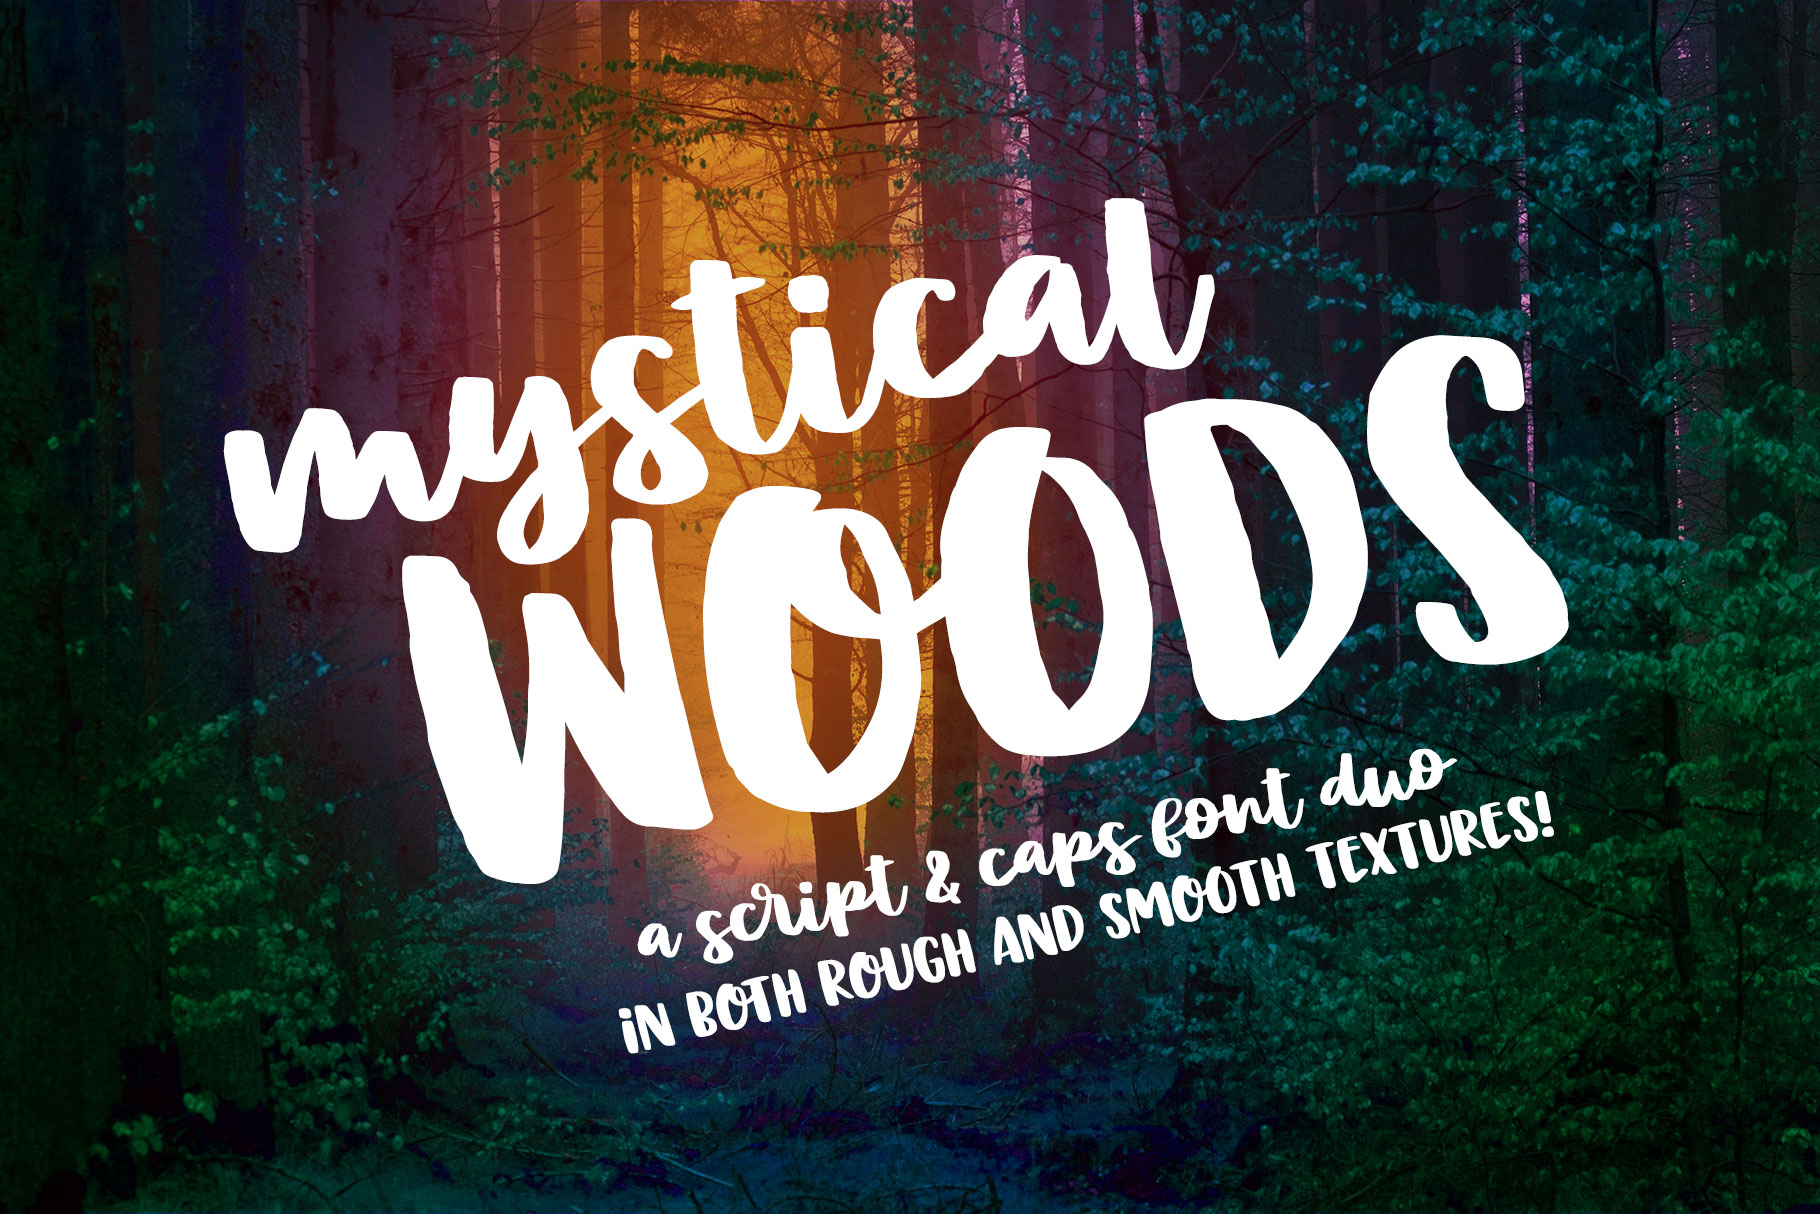 Mystical Woods - a script and caps duo! example image 1